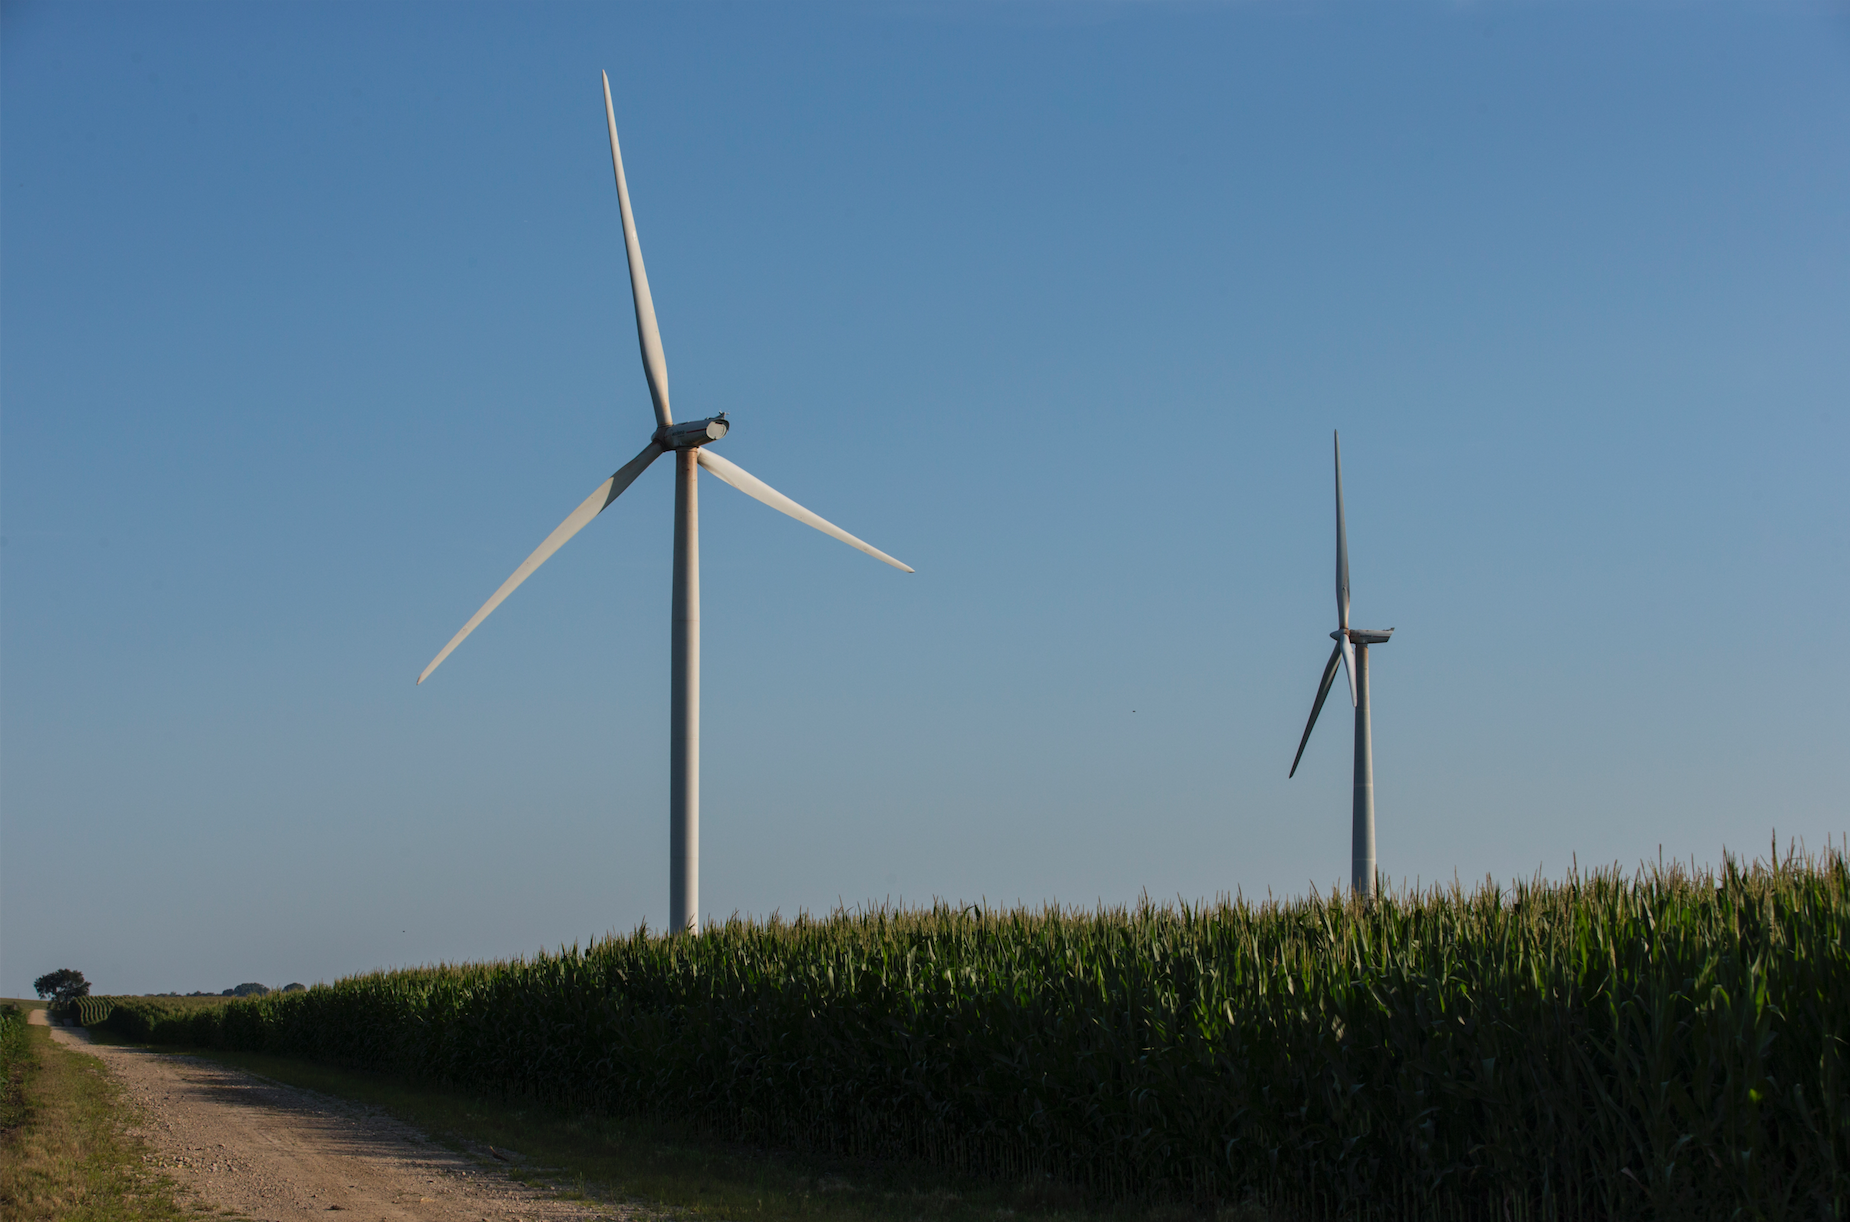 UI research finds no hazards from wind turbines